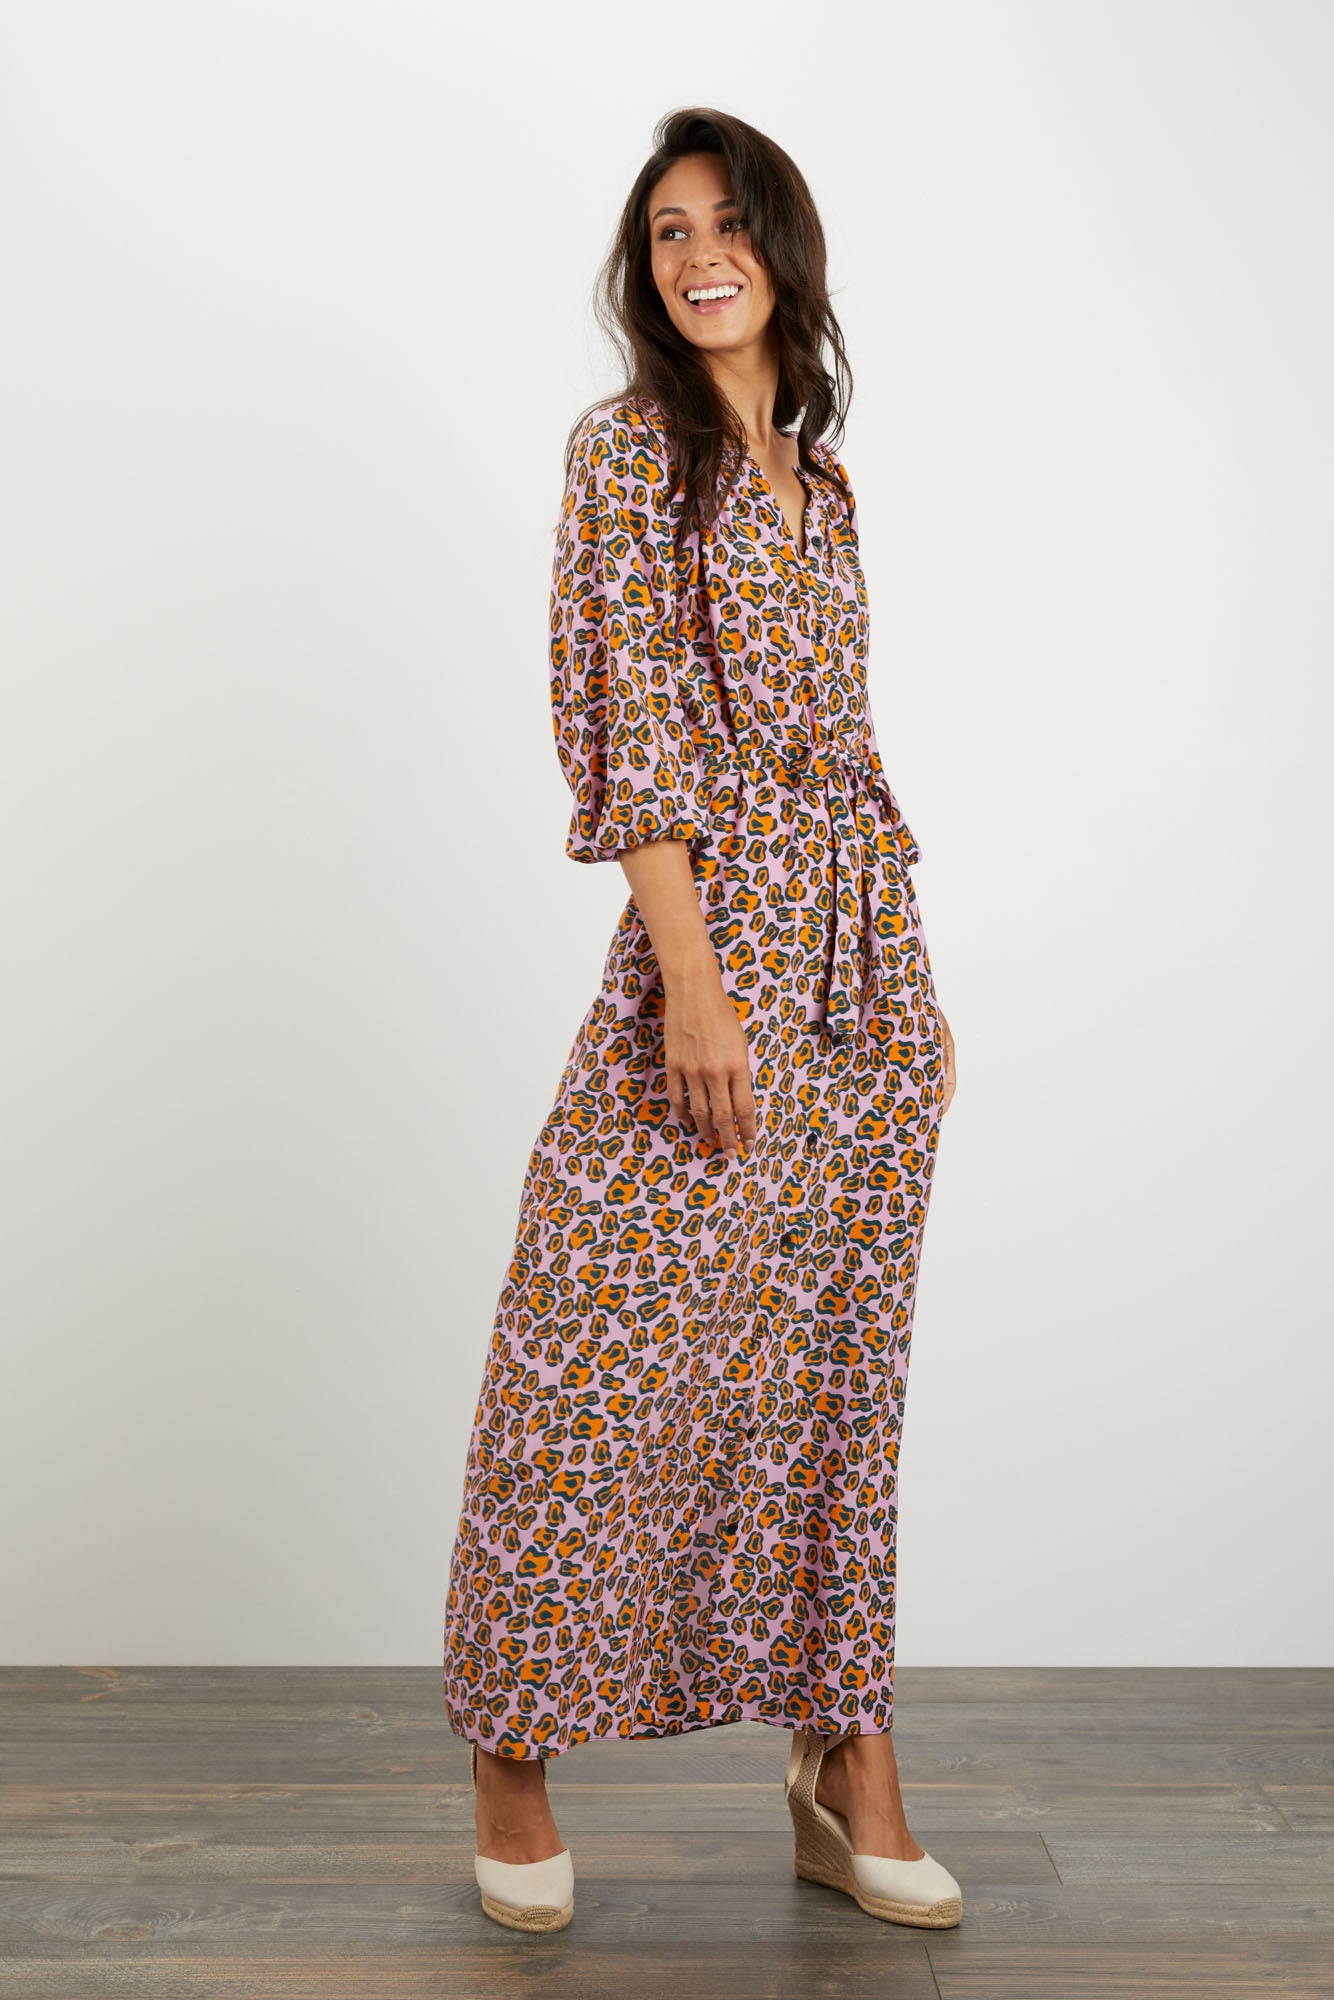 The Classic Maxi Dress | Sunday Brunch